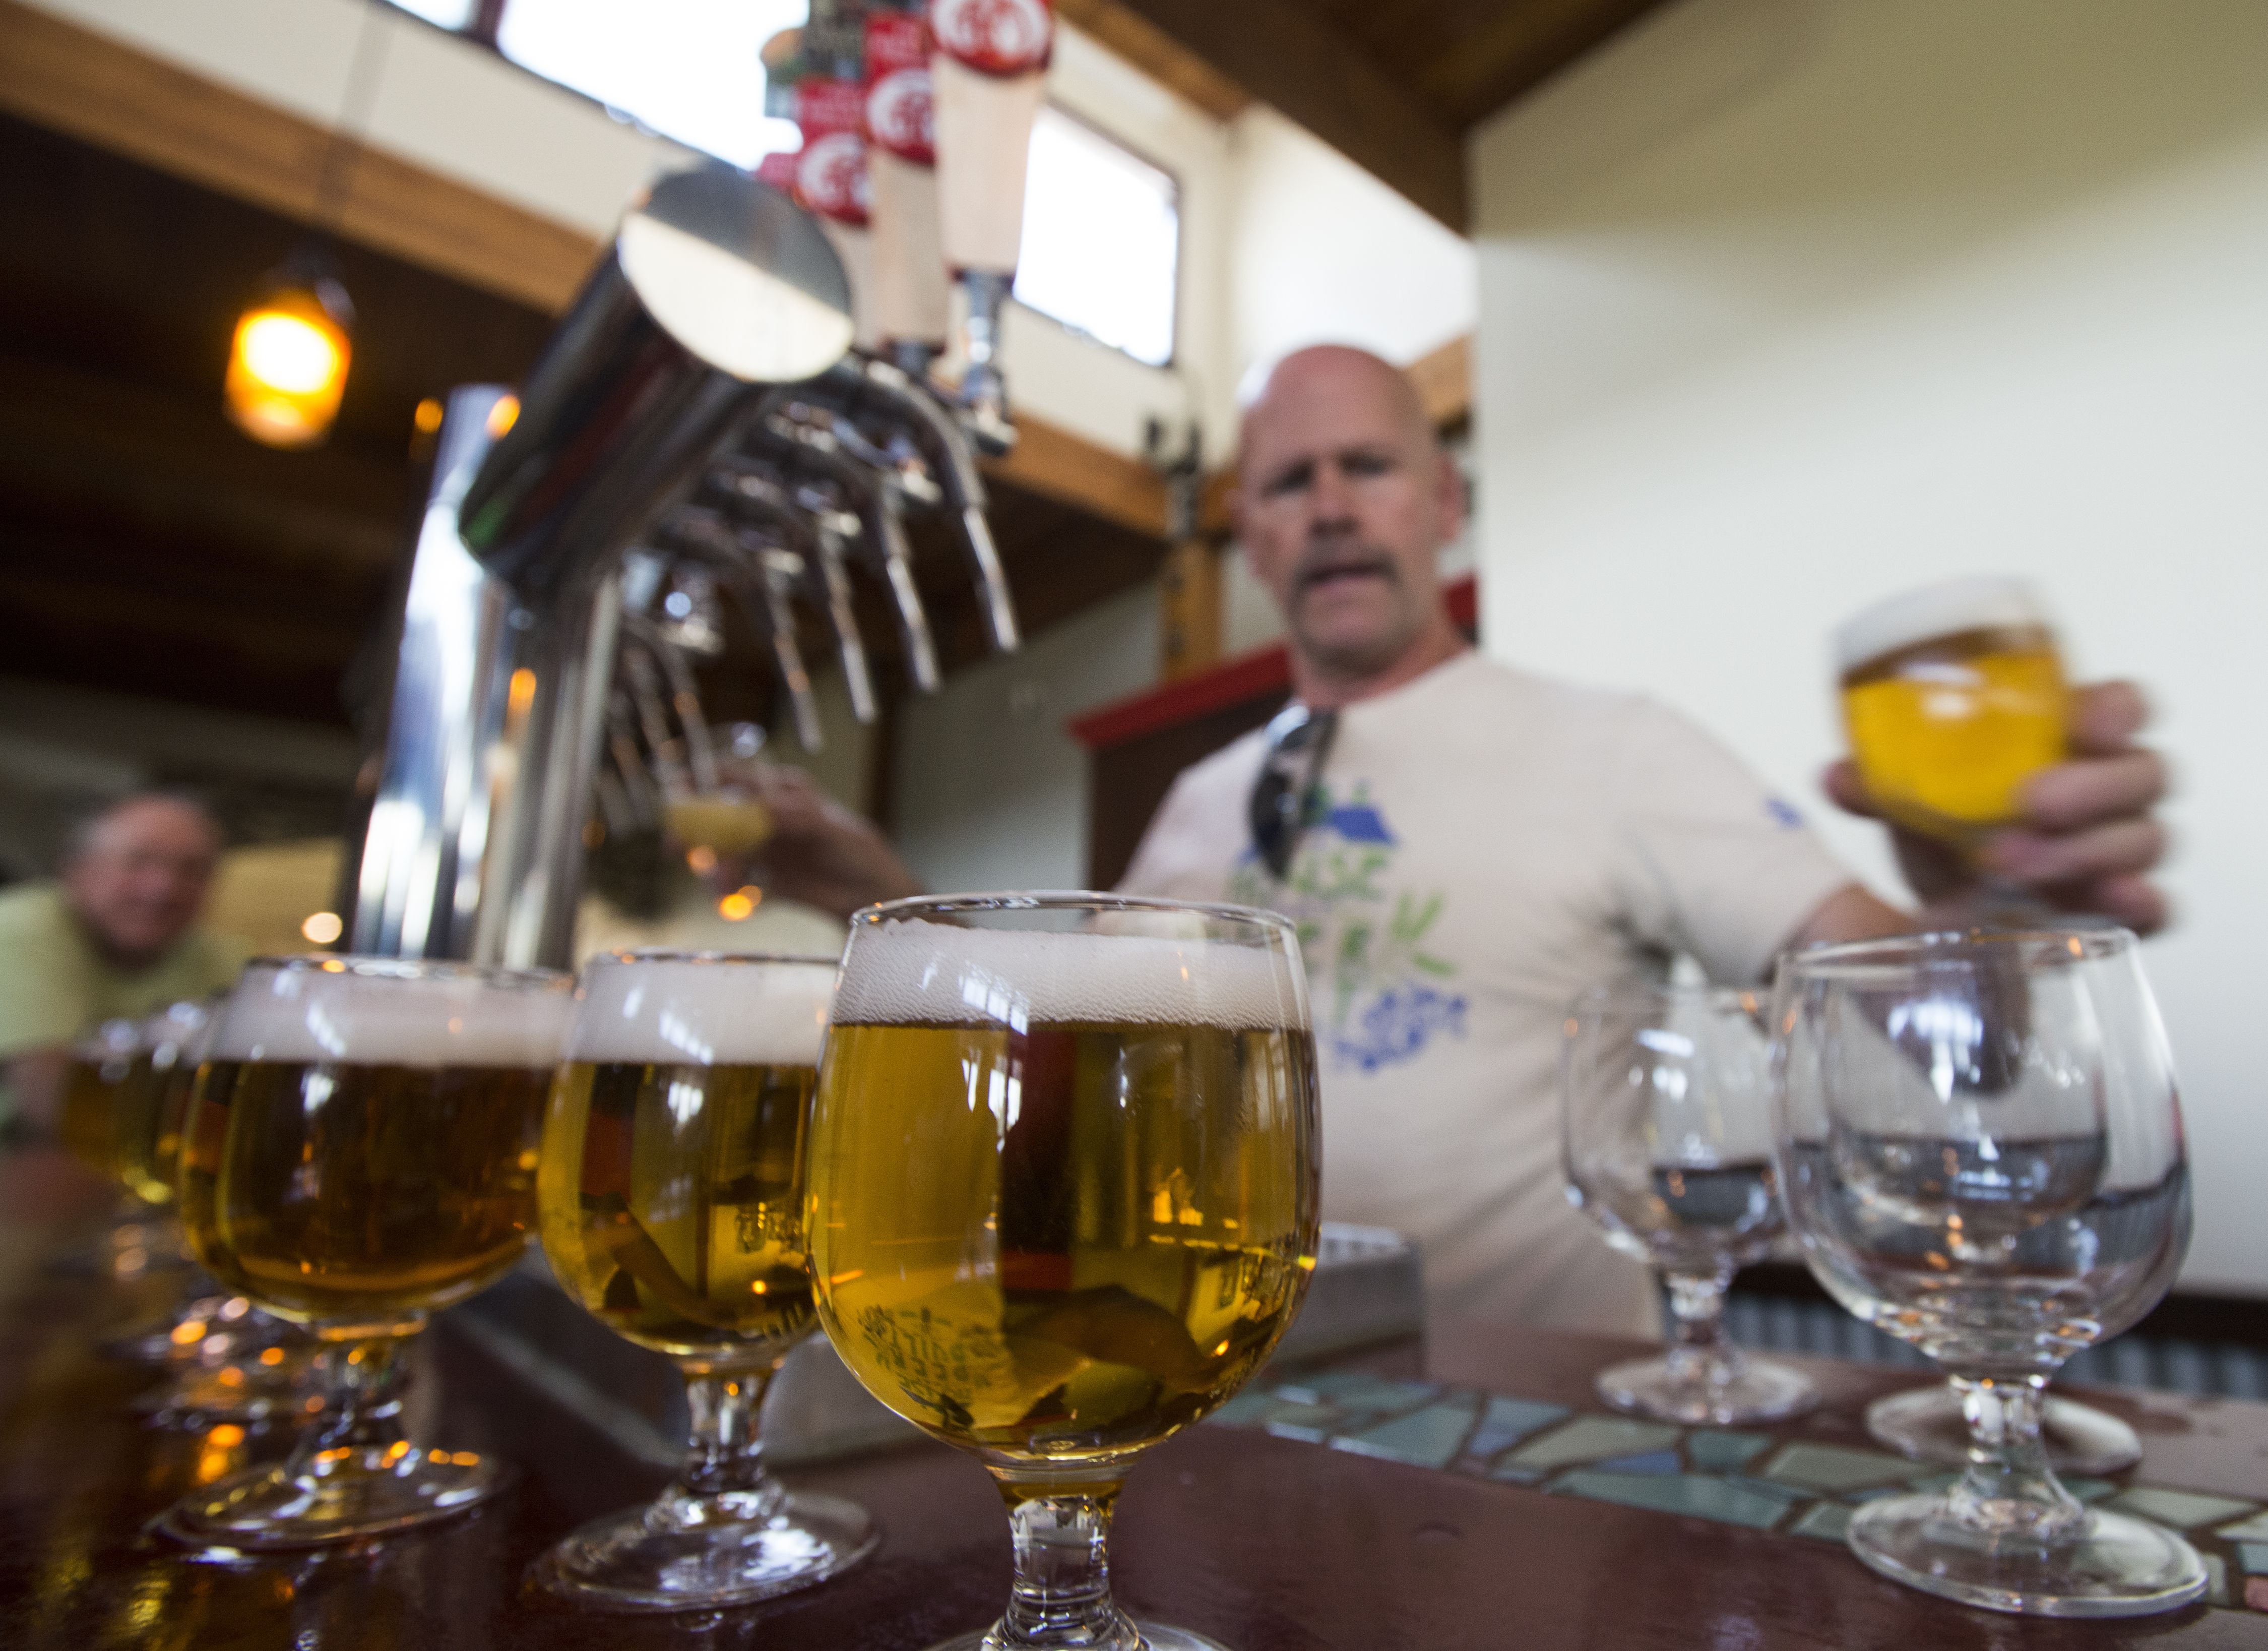 A man pours several amber beer glasses.